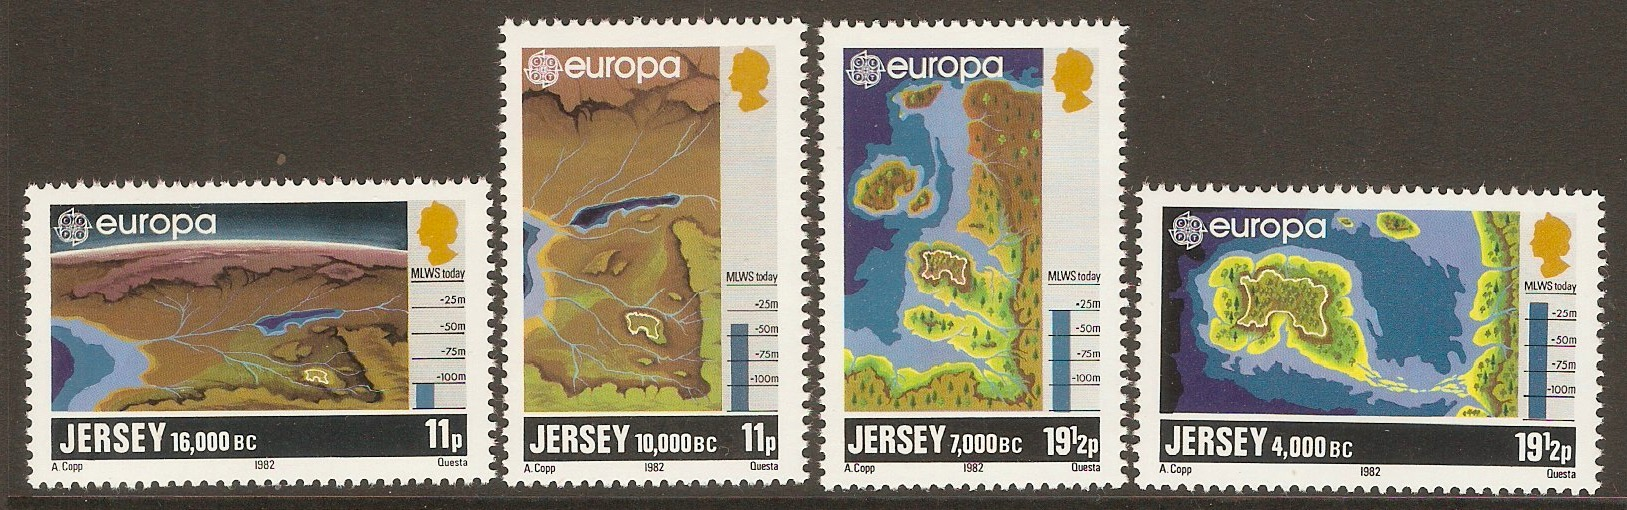 Jersey 1982 Europa - Formation of Jersey set. SG289-SG292.